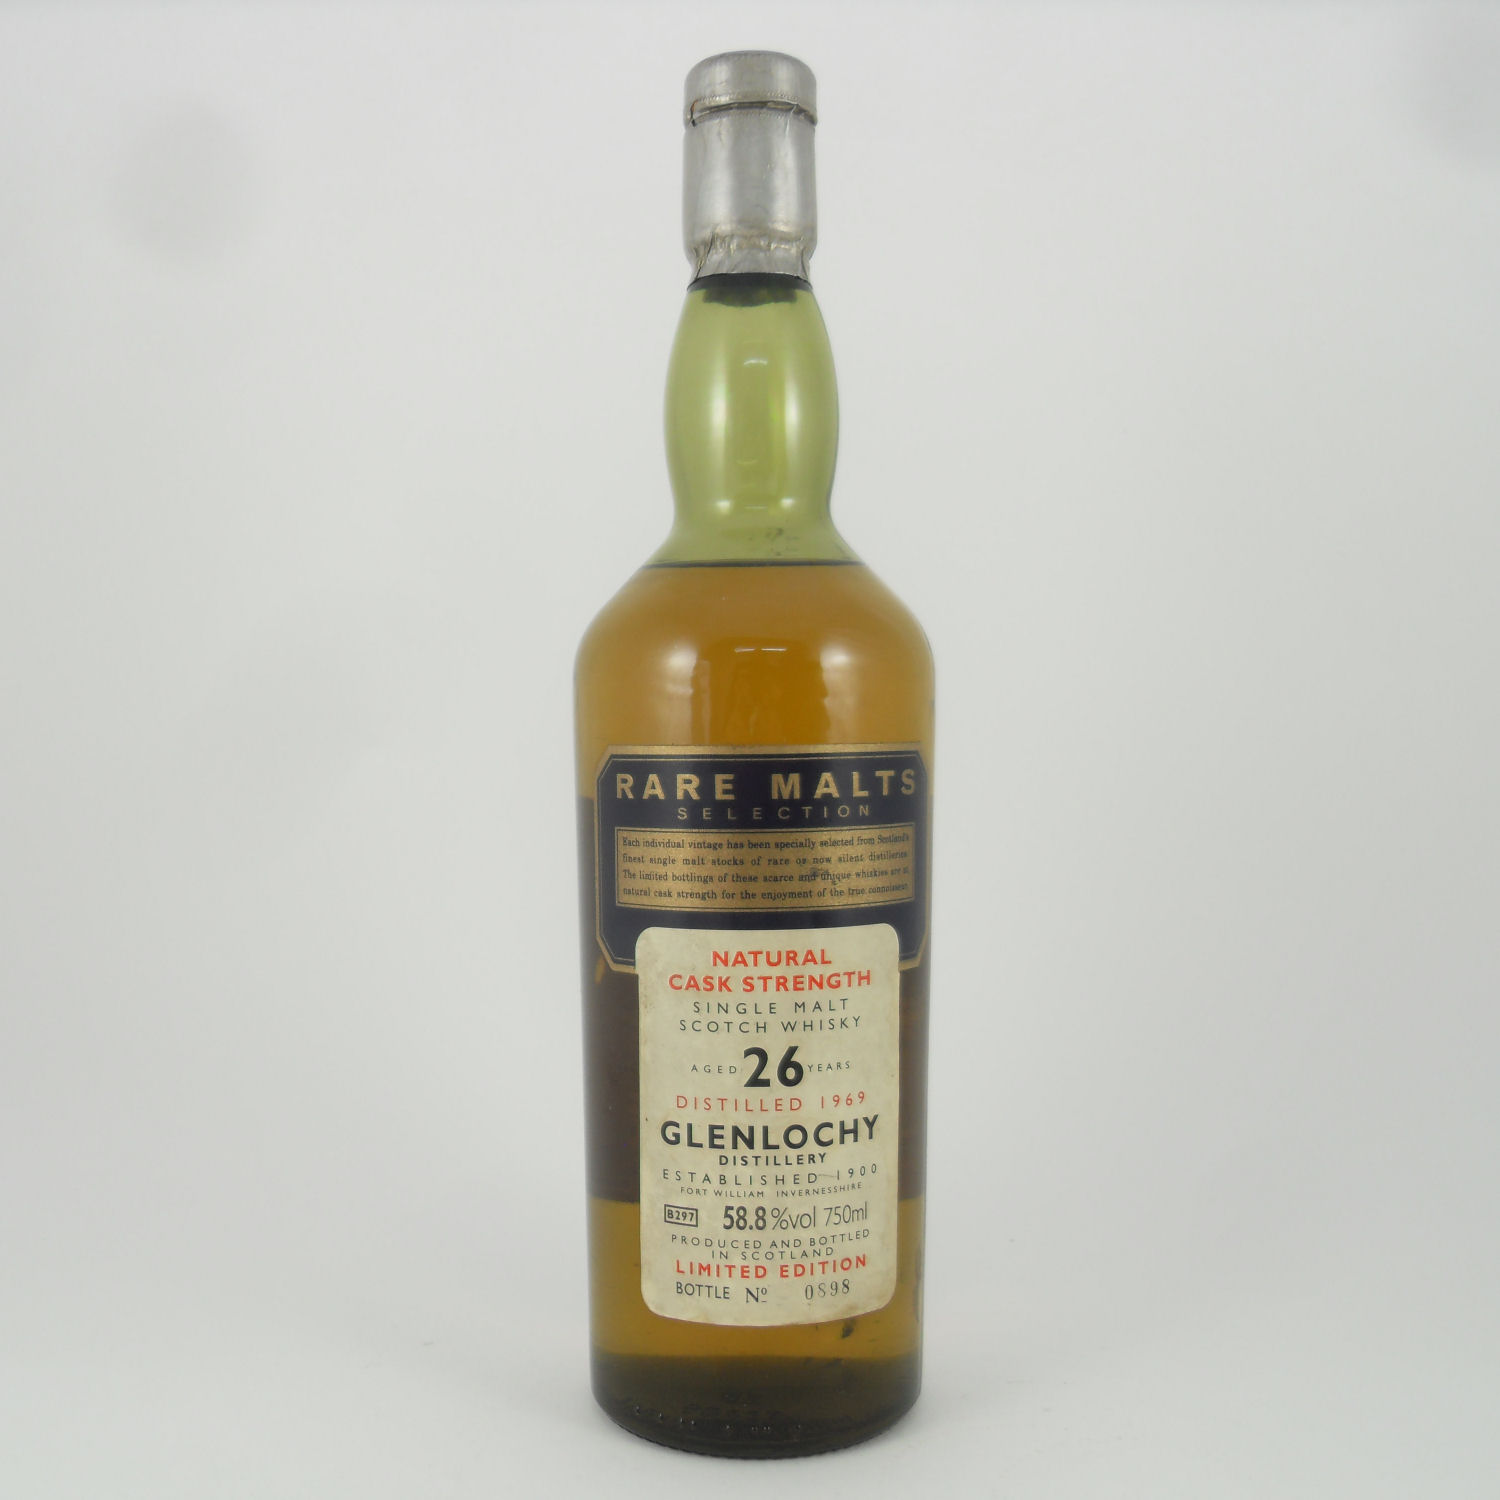 Glenlochy Scotch Whisky